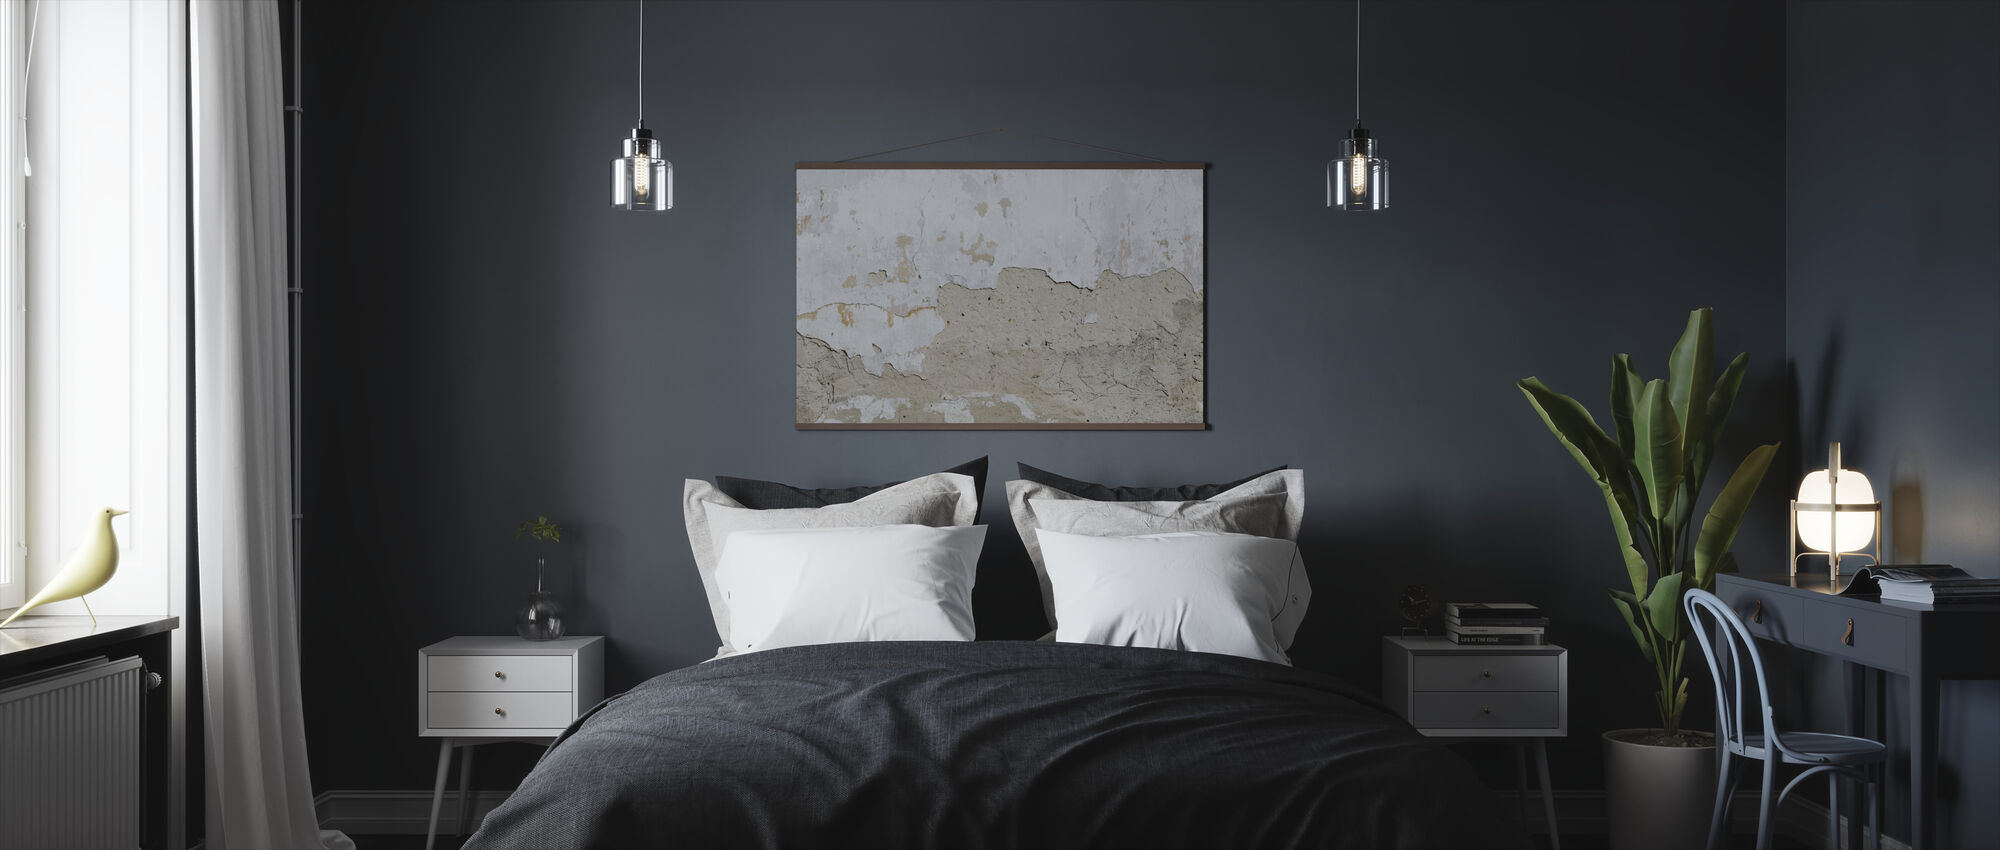 Concrete Wall - Poster - Bedroom